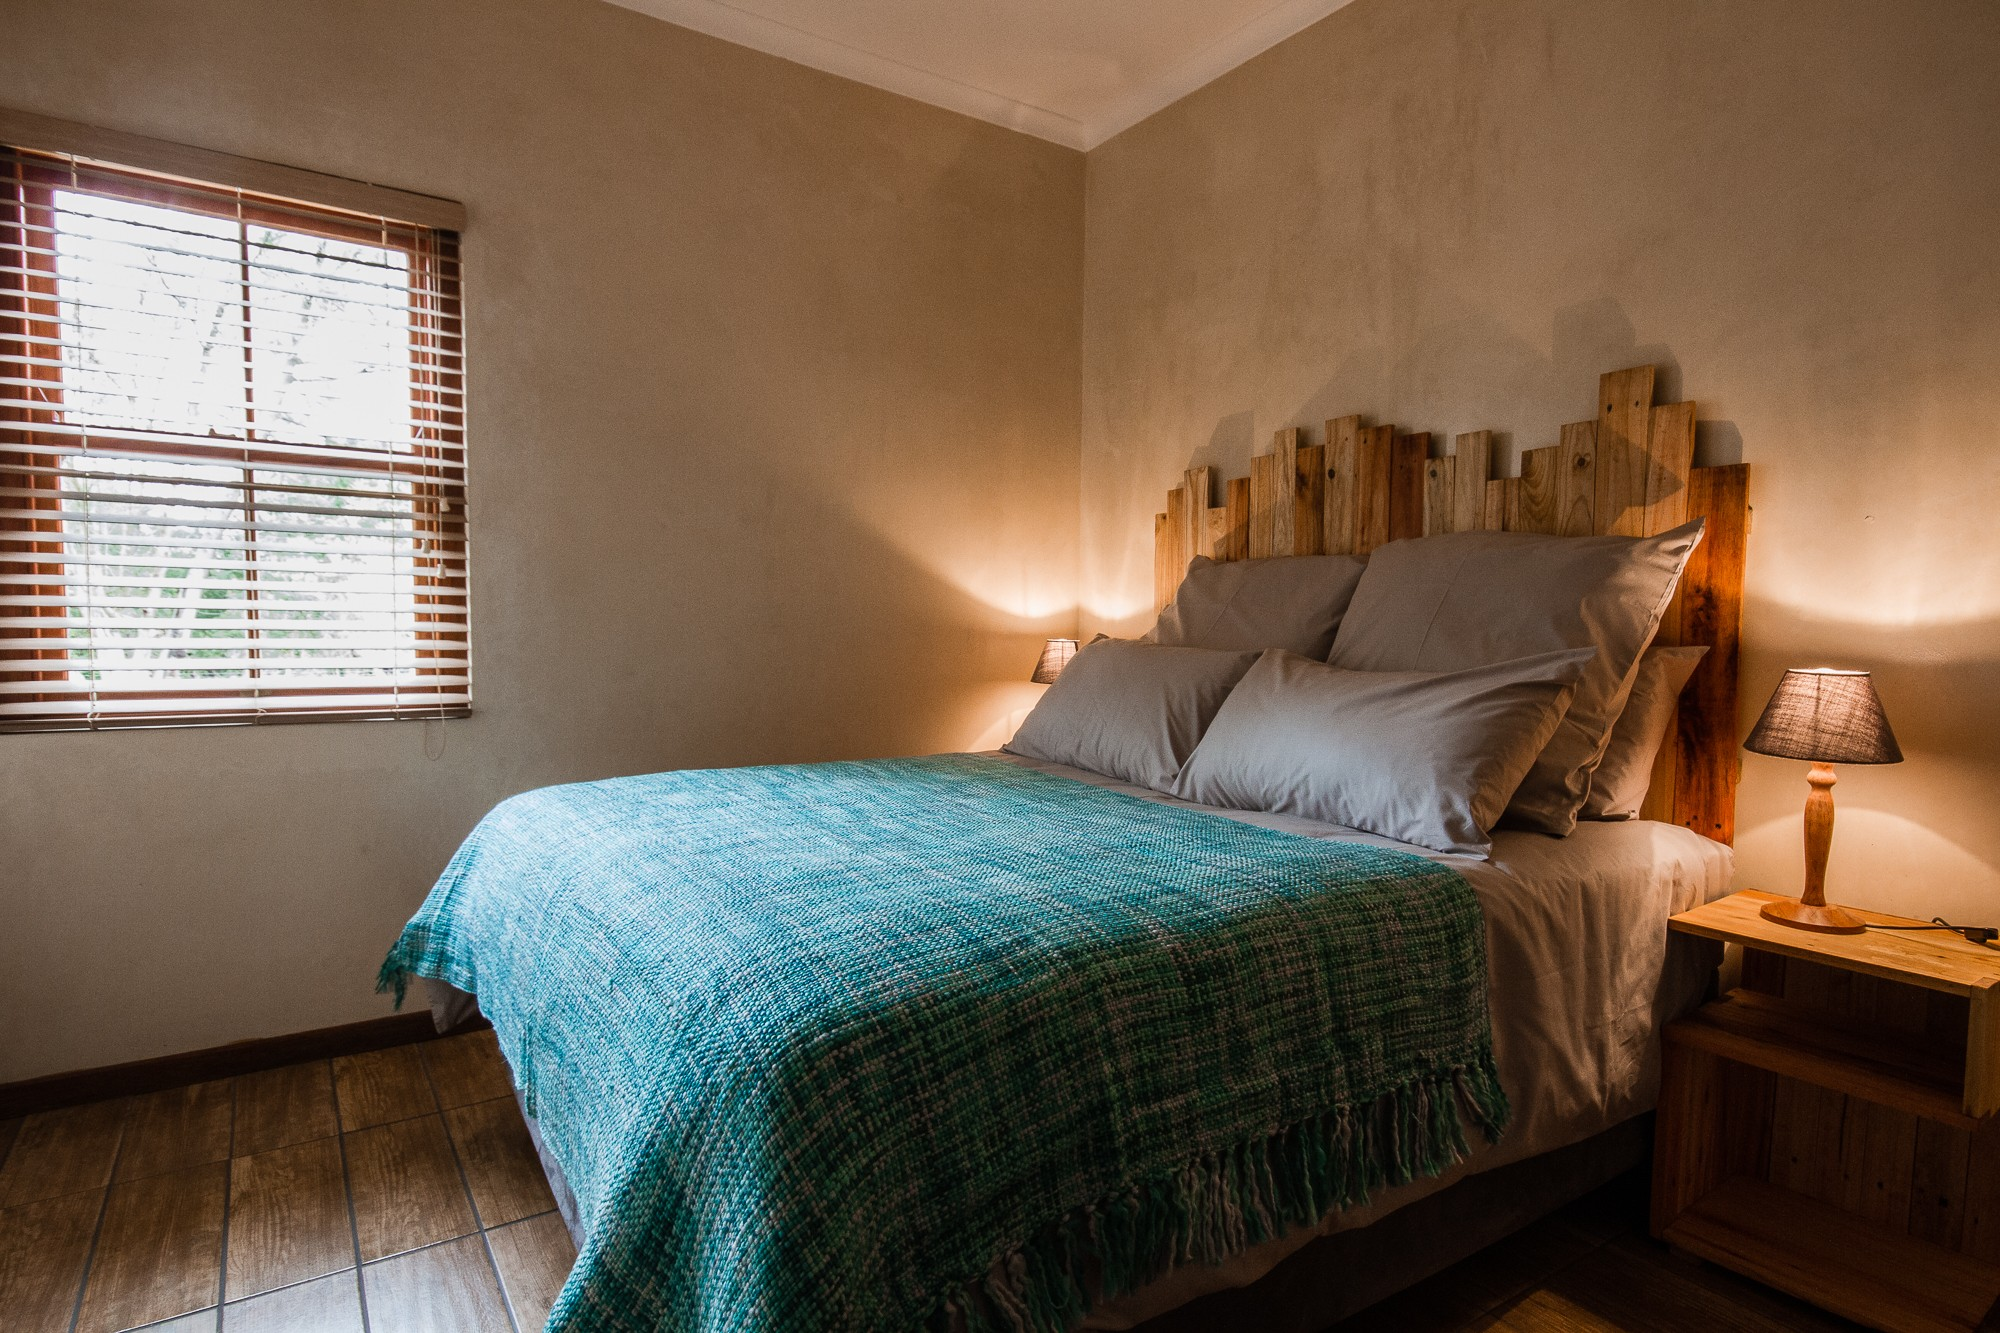 Location Dolittle Cottages Swellendam Self catering Reviews